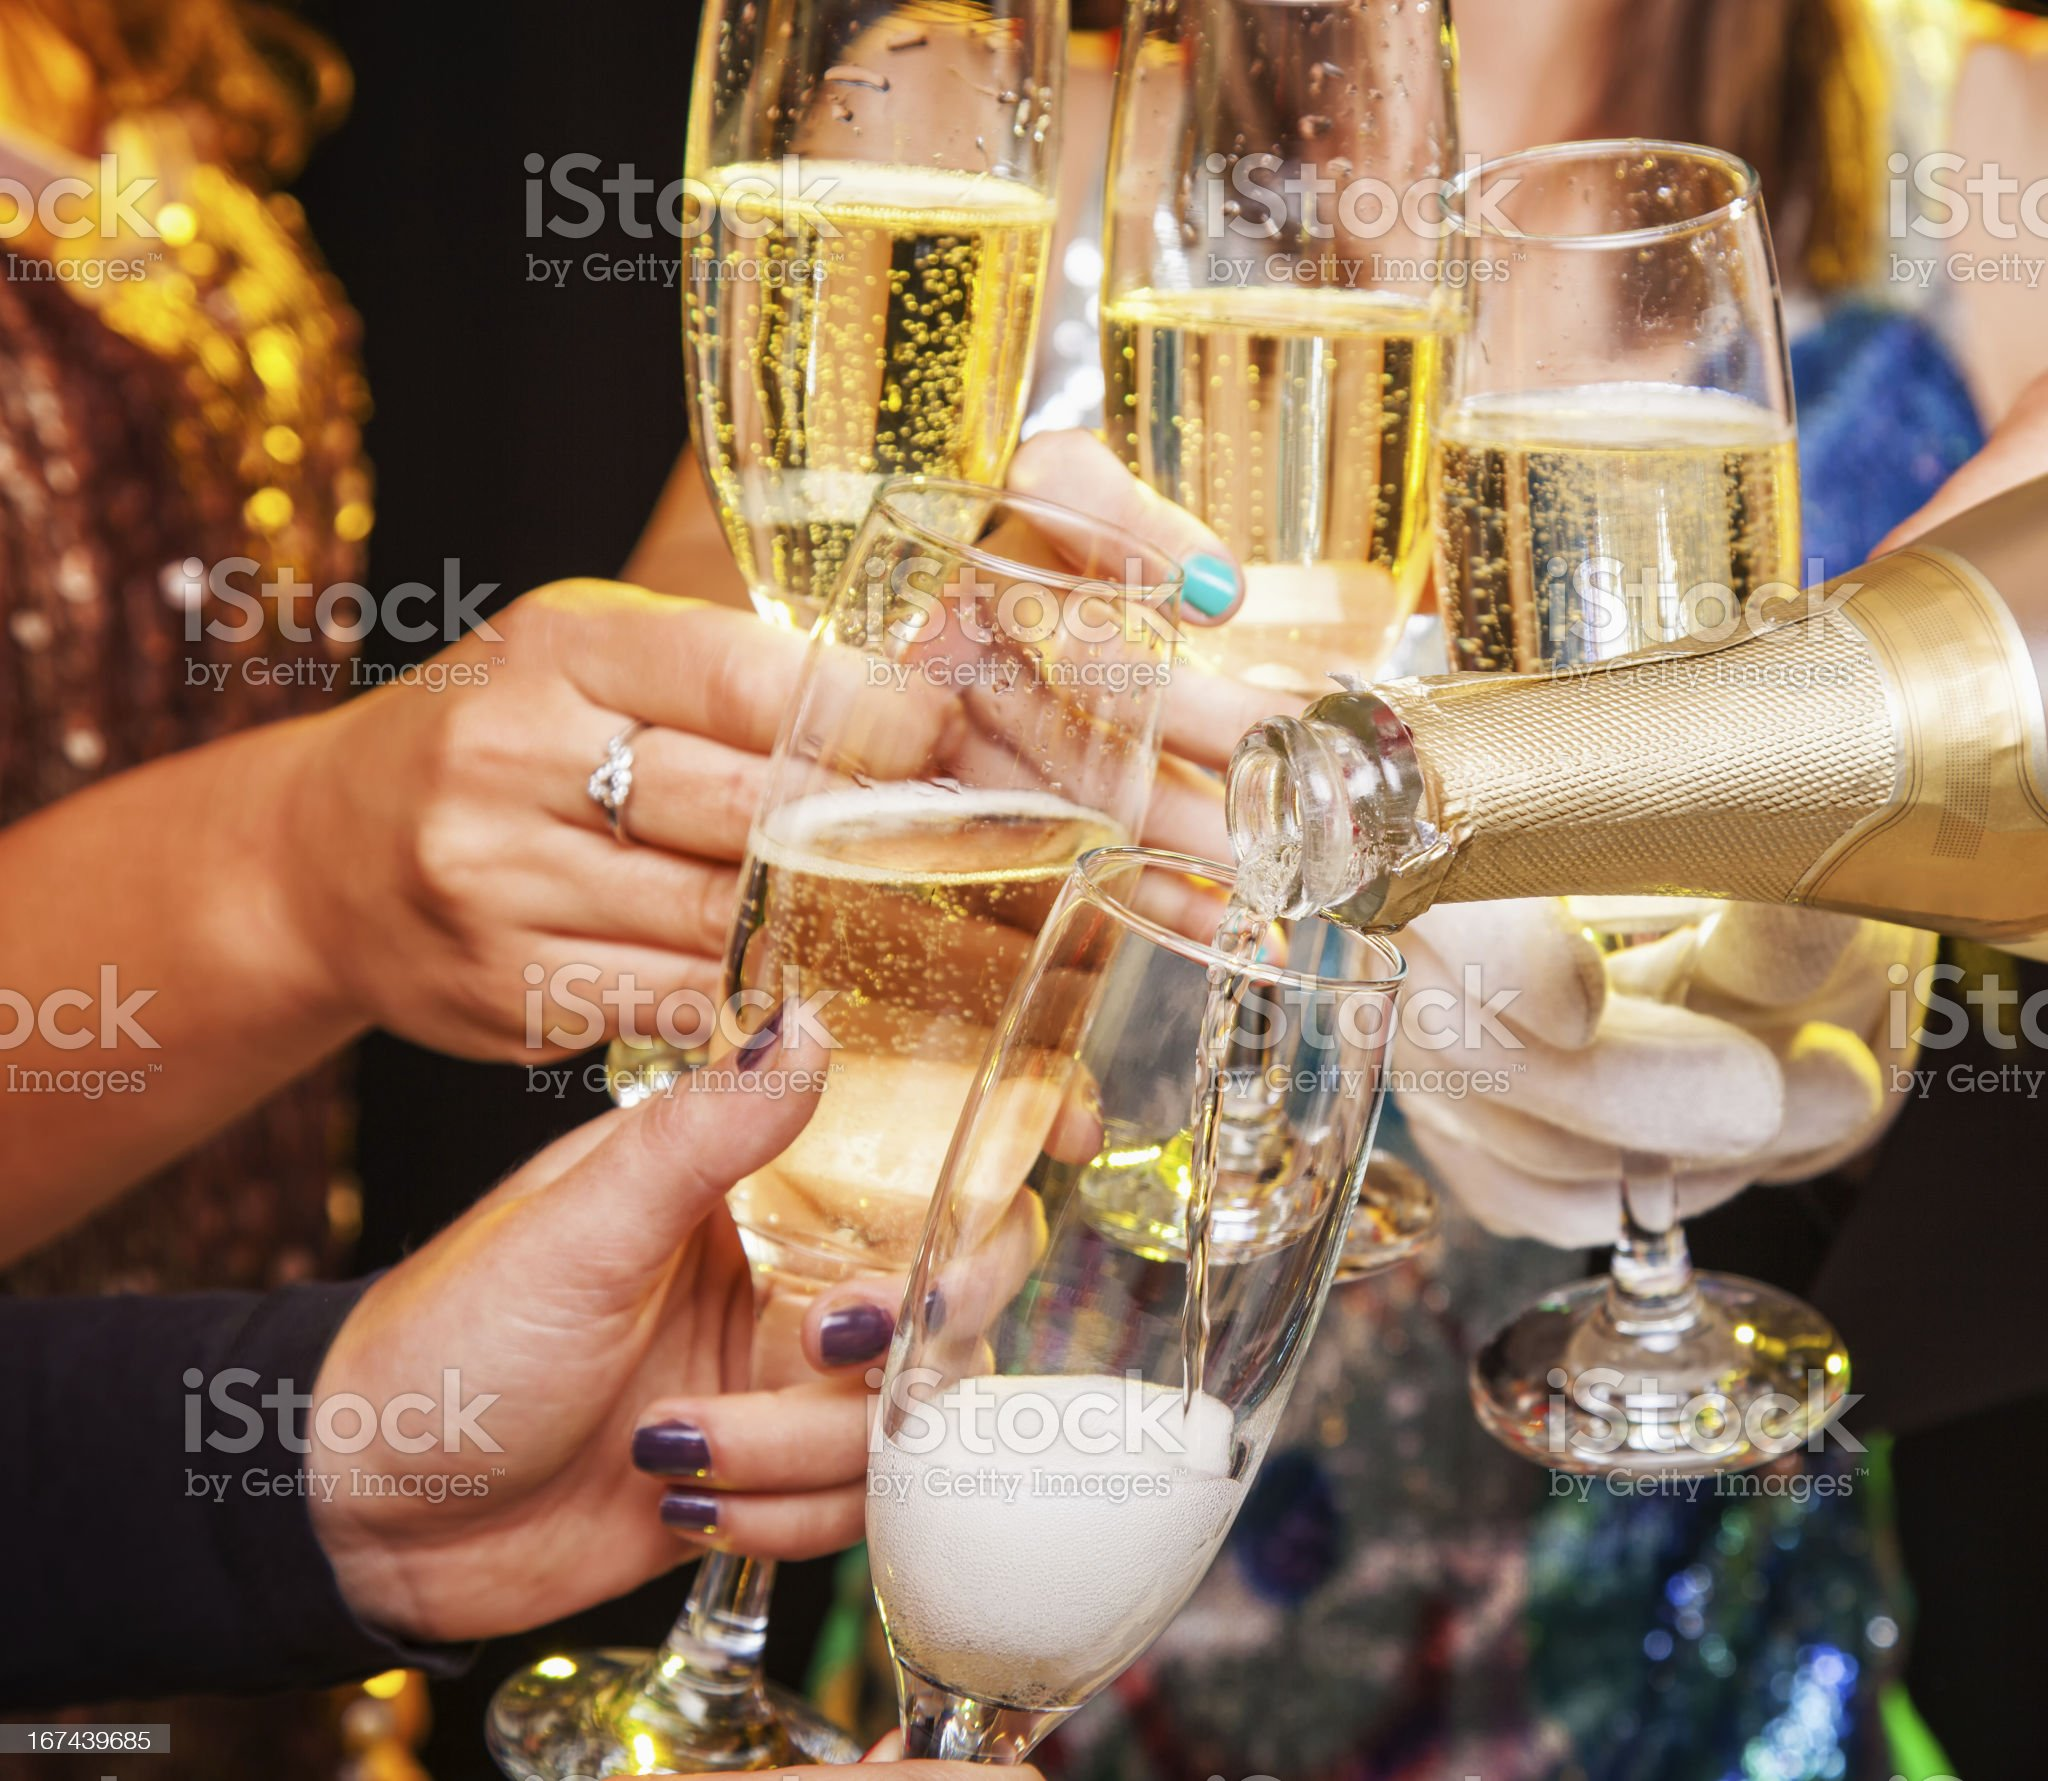 Hands holding champagne glasses during a toast royalty-free stock photo